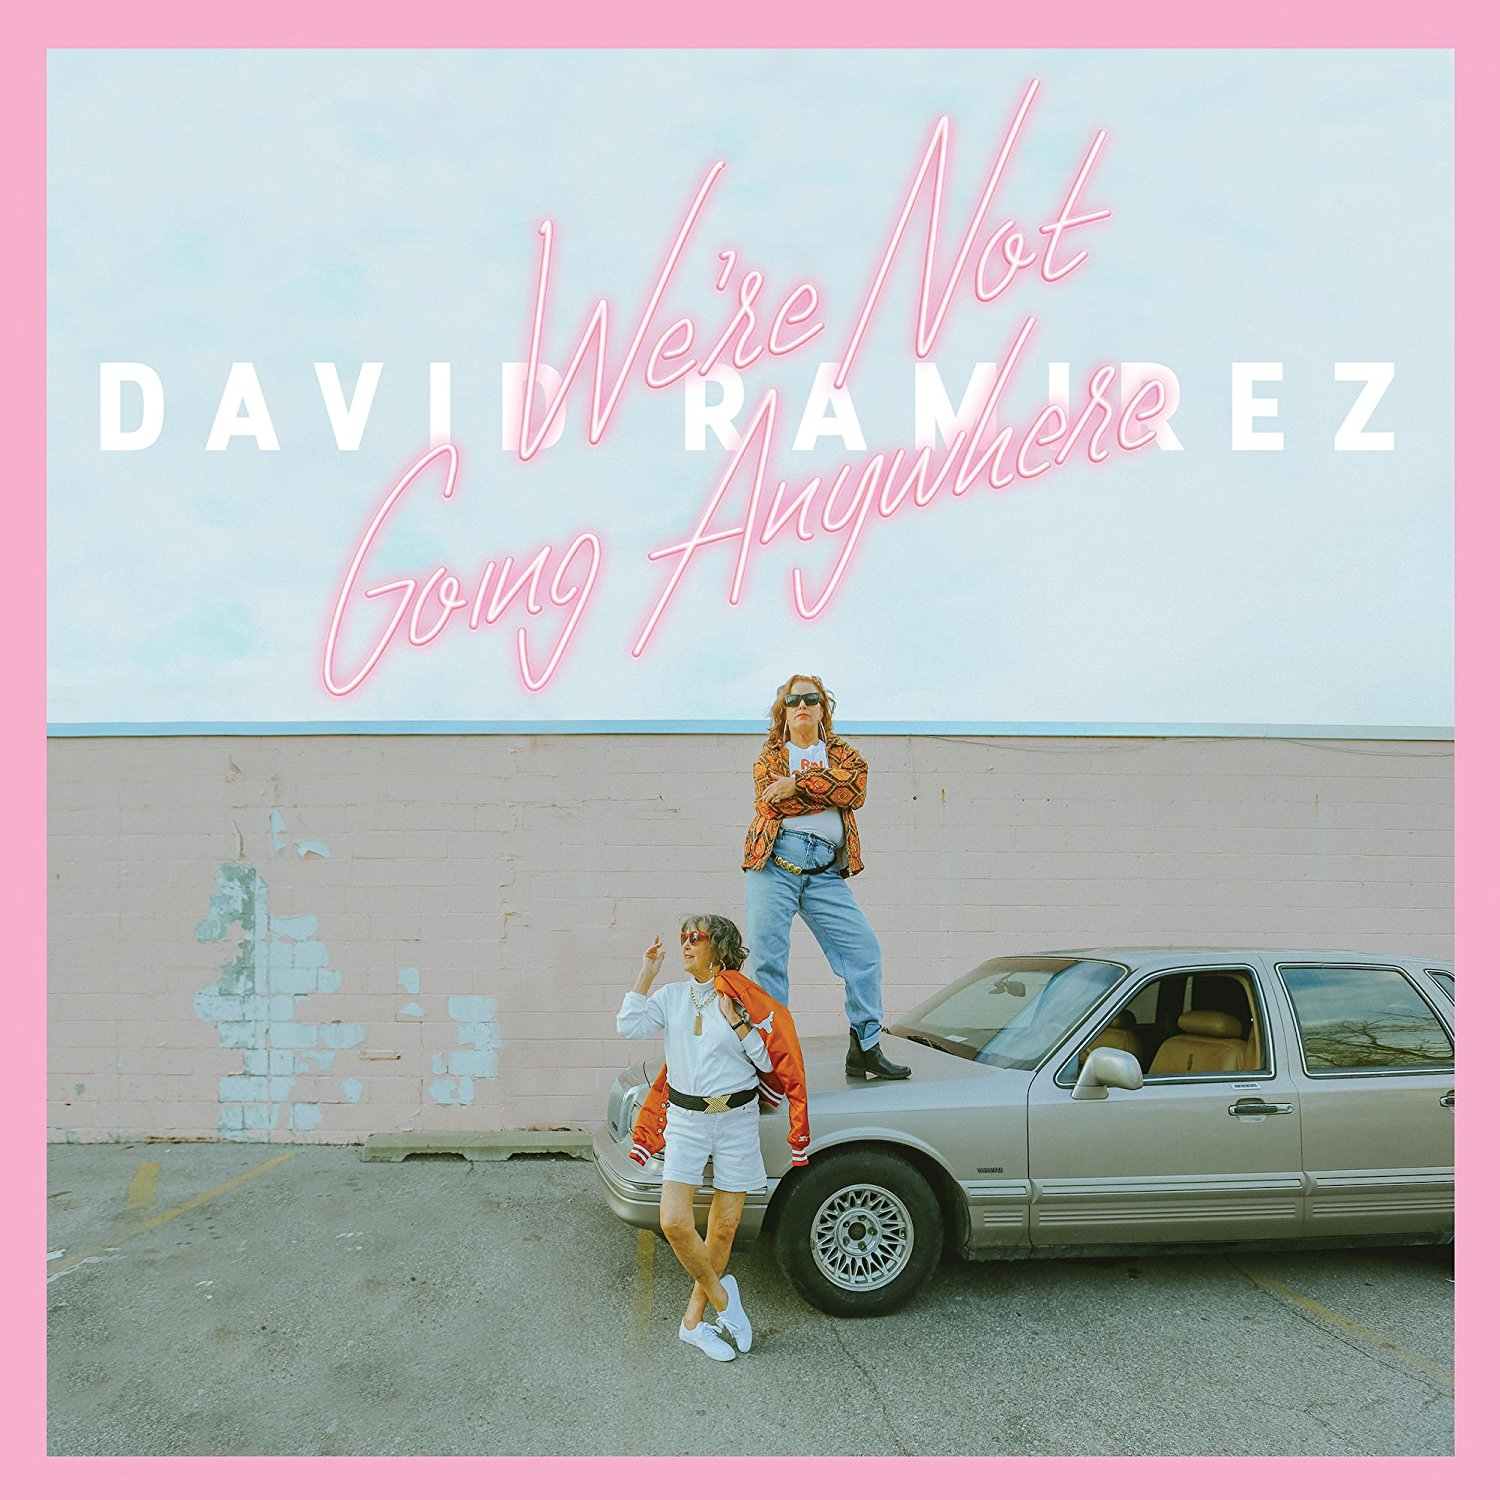 David Ramírez - We're not going anywhere